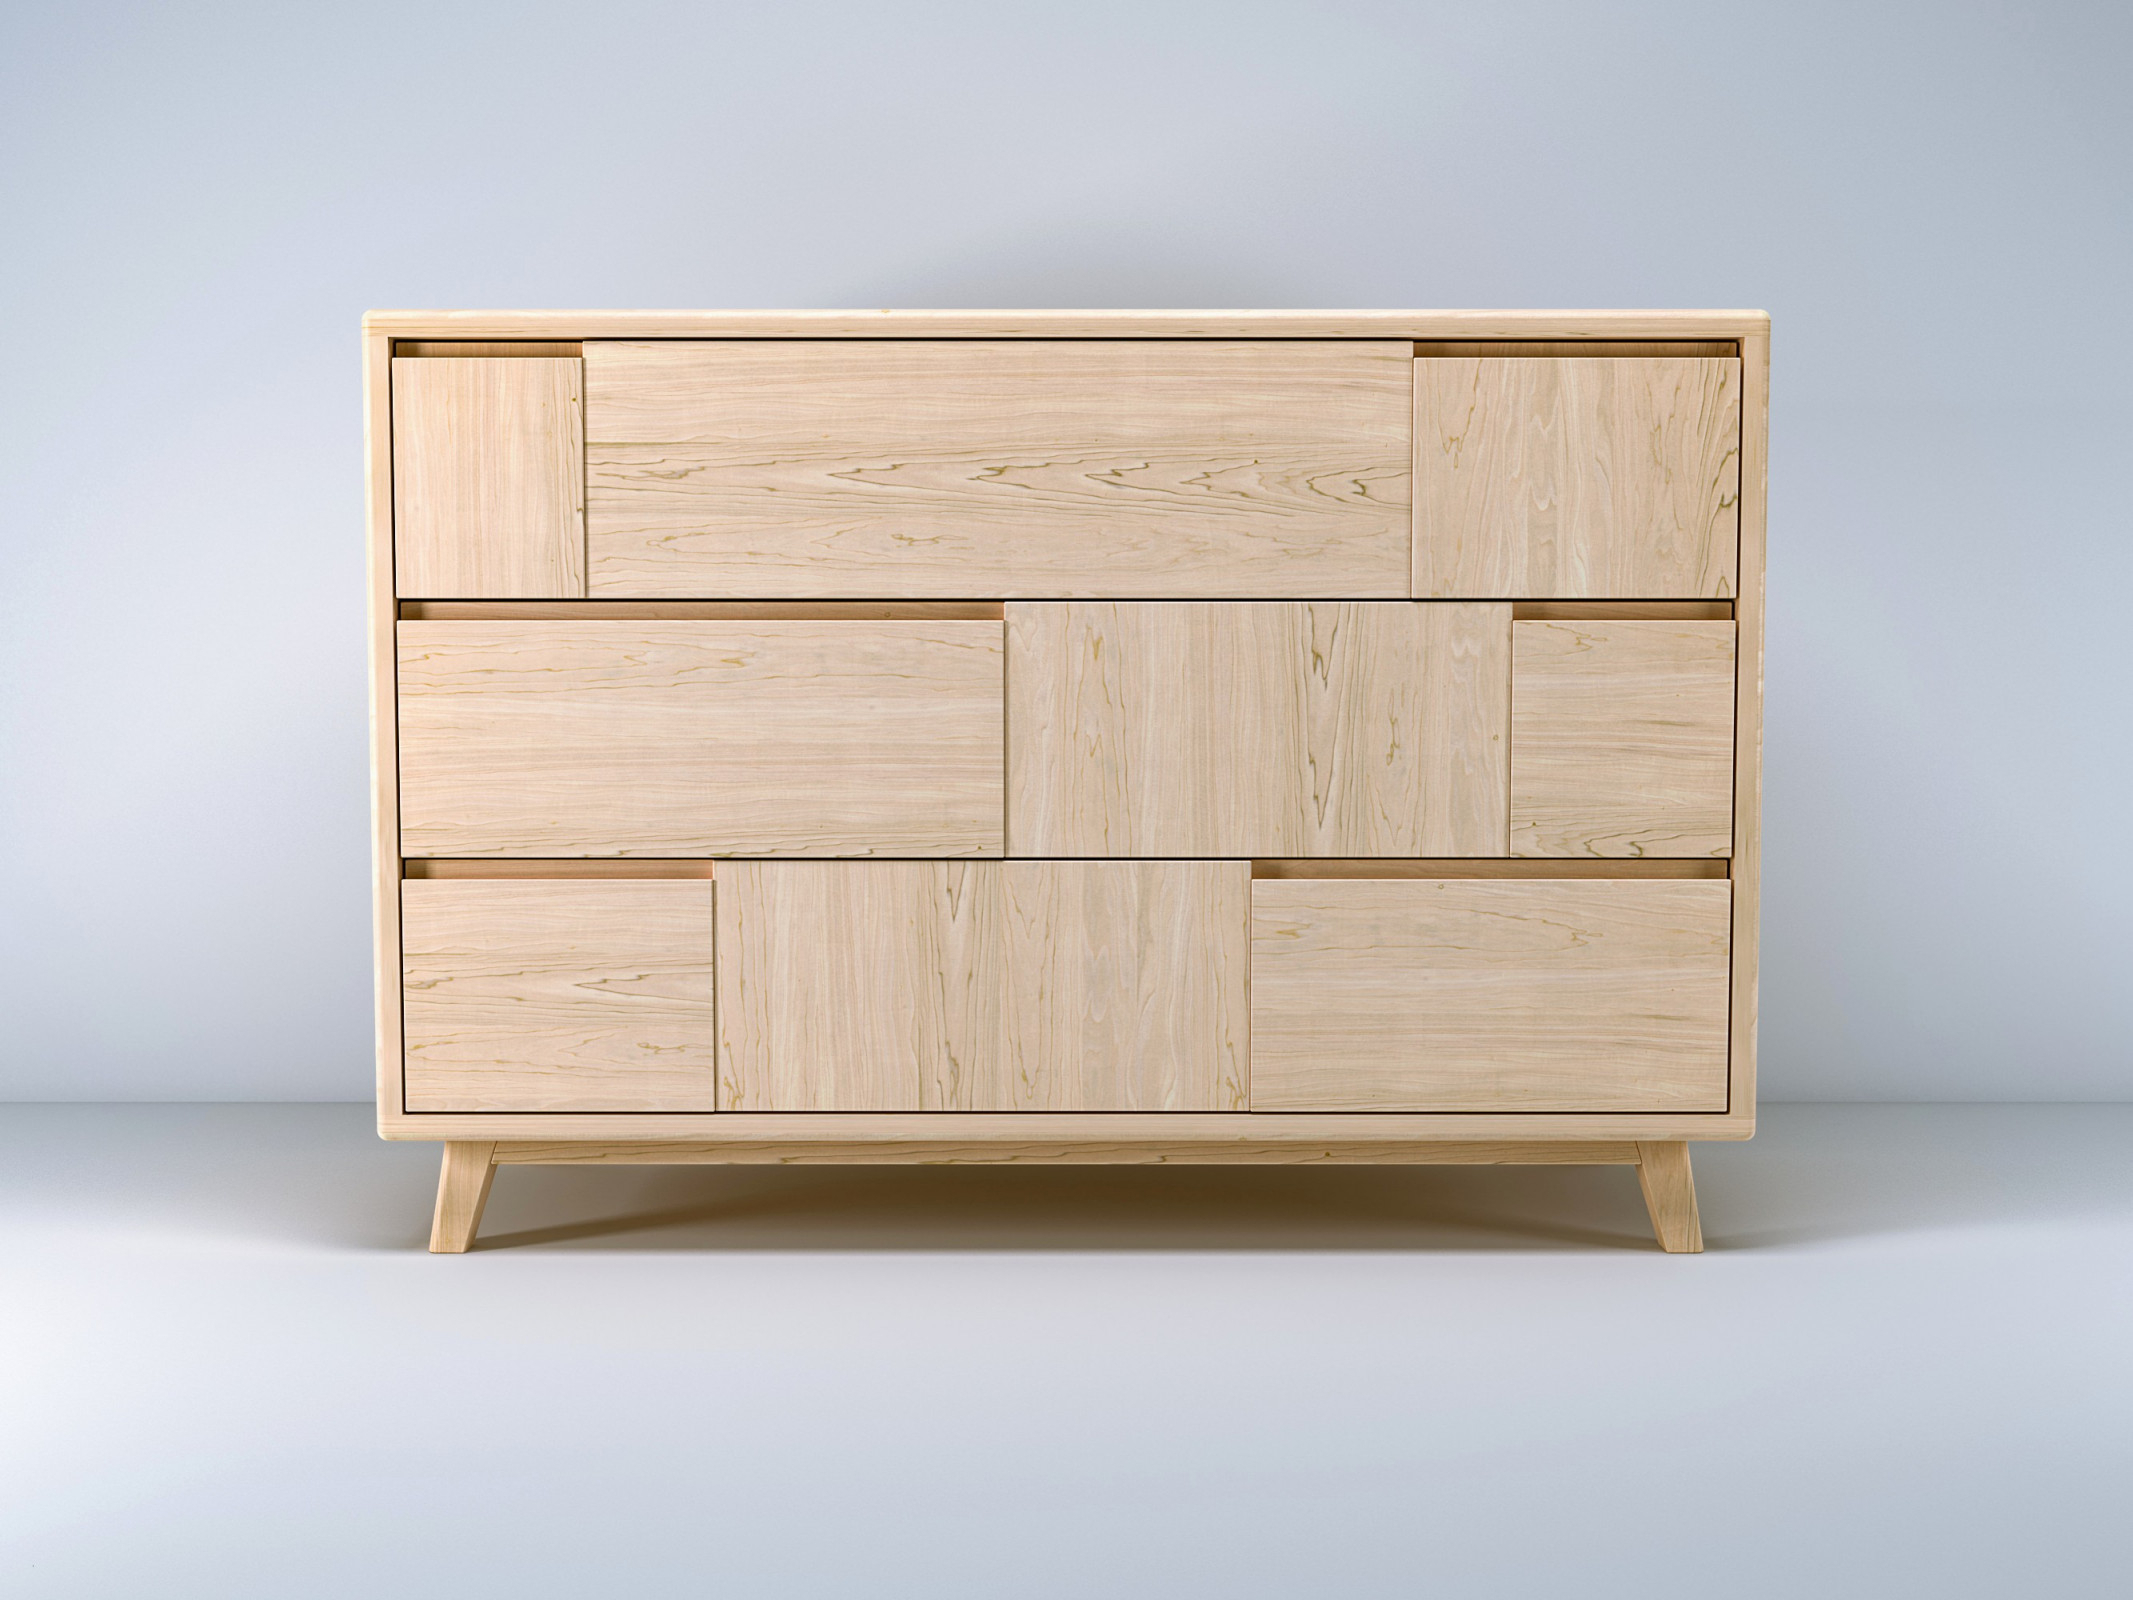 Fernsehschrank Fur Ecke Branché Schwarzes Sideboard Genial Intended For 2018 North York Sideboards (#4 of 20)